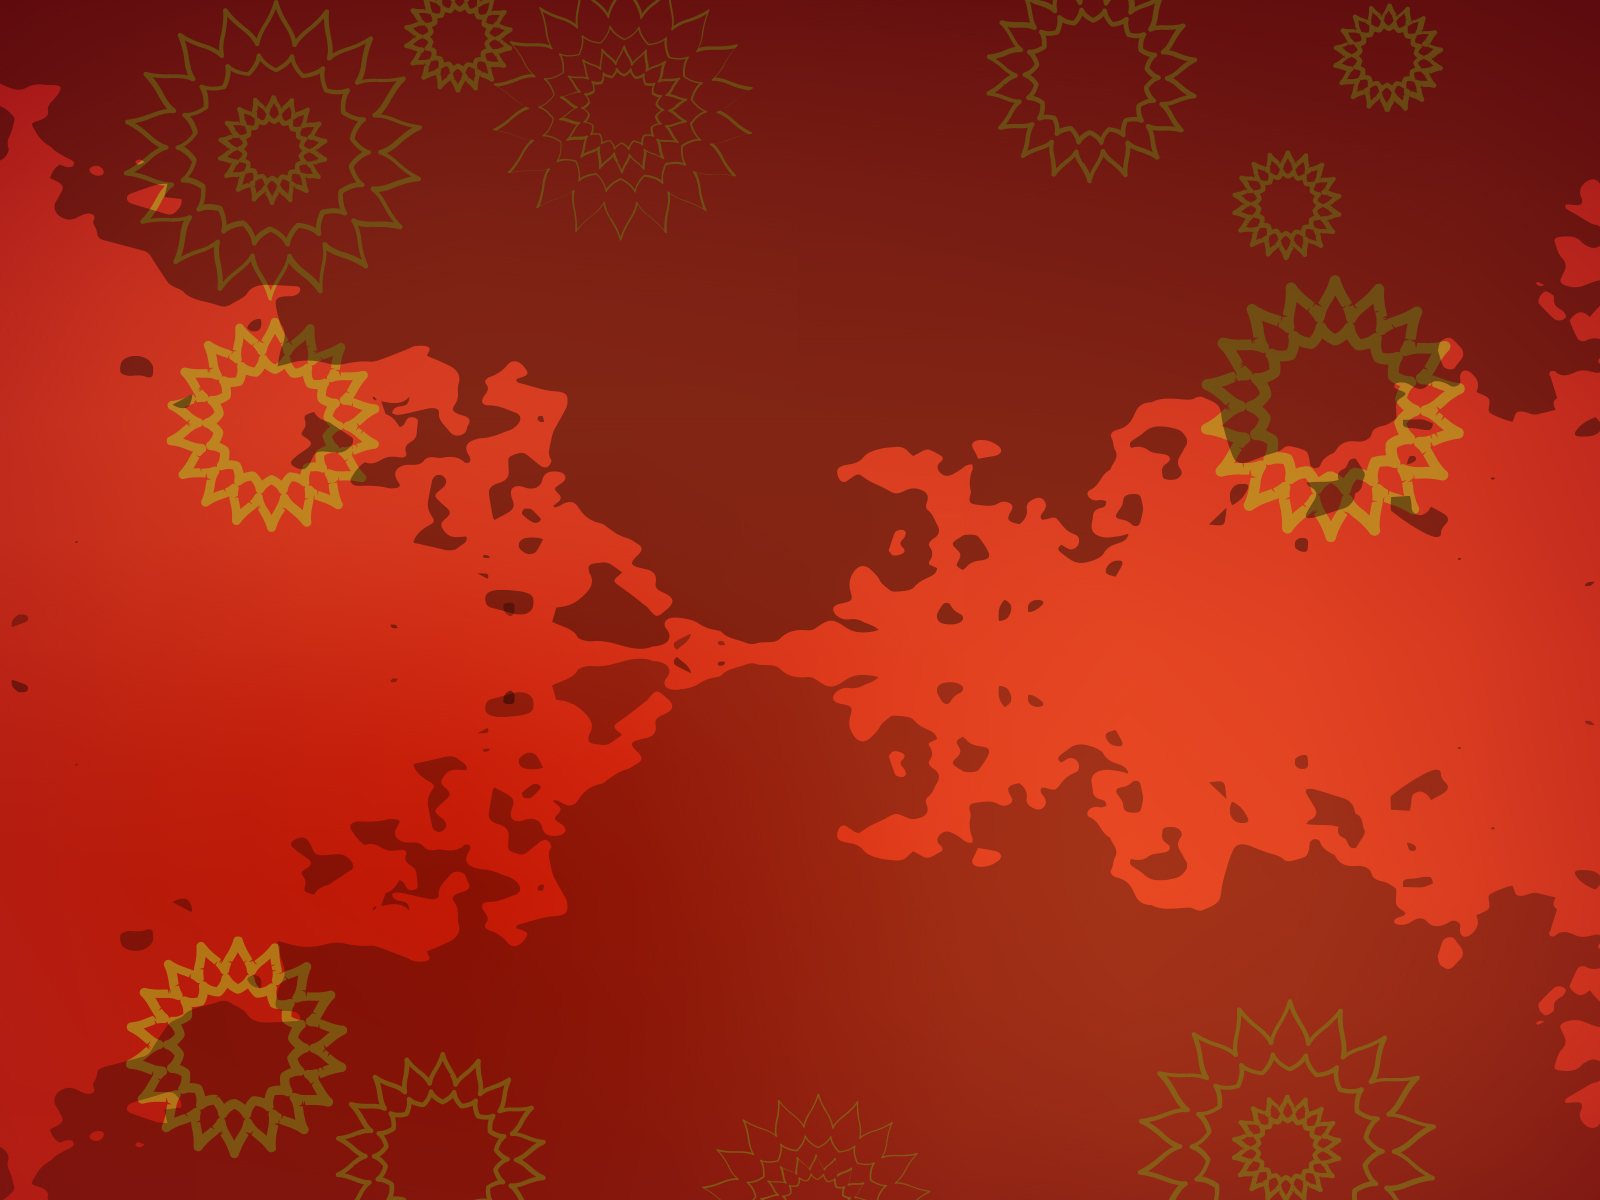 china ppt backgrounds, ch na slides - ppt backgrounds for free, Modern powerpoint